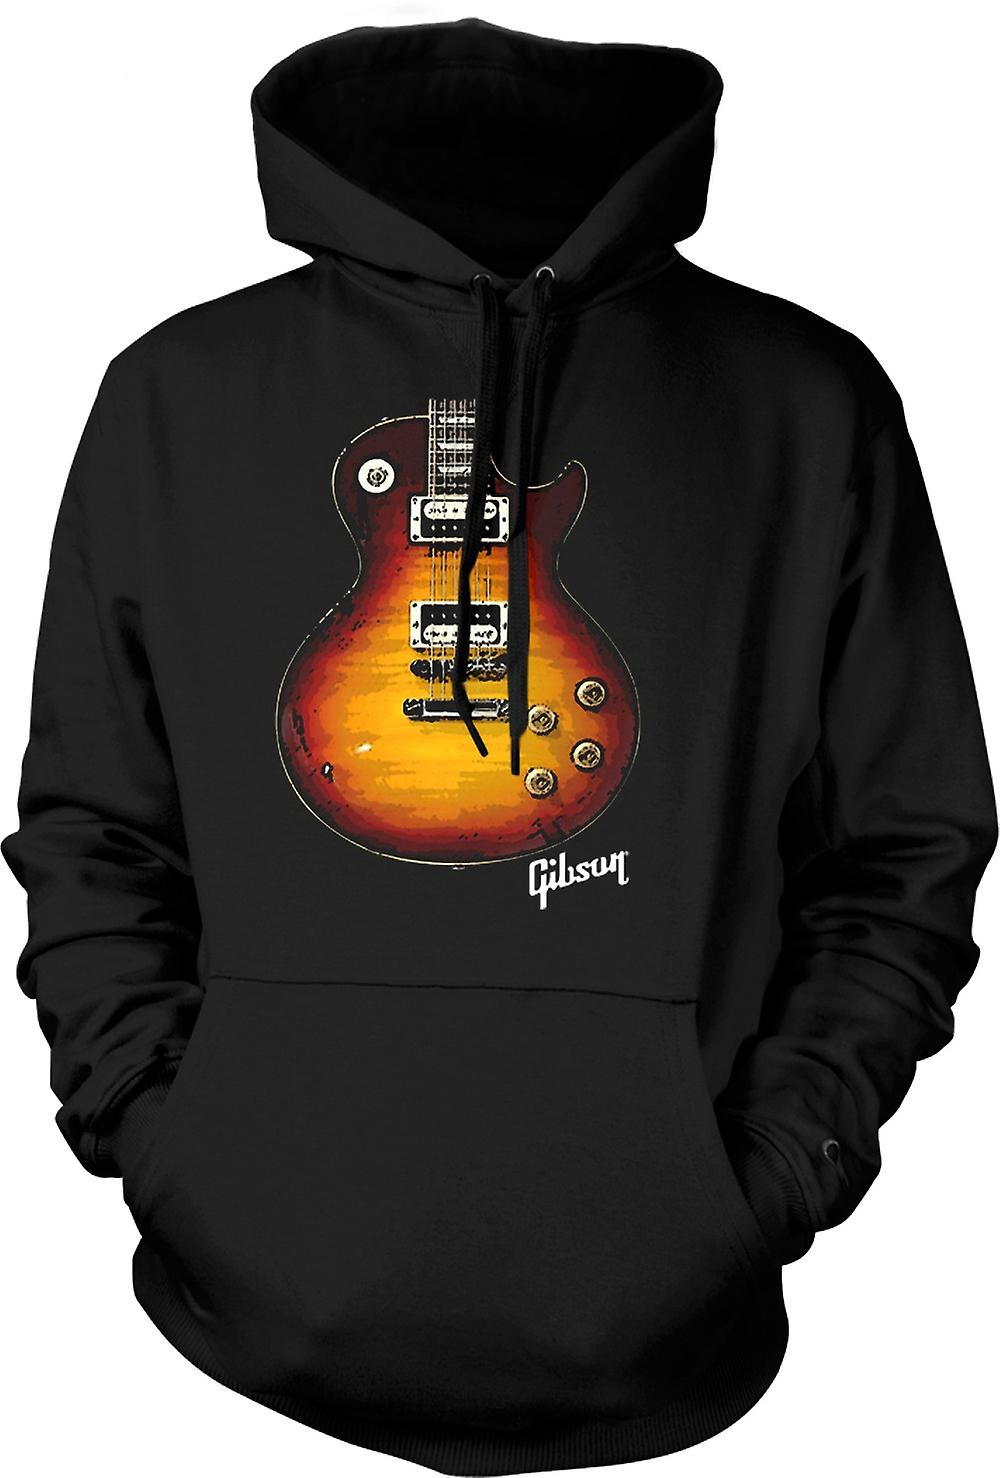 Mens Hoodie - Gold Gibson Les Paul Guitar - Musica